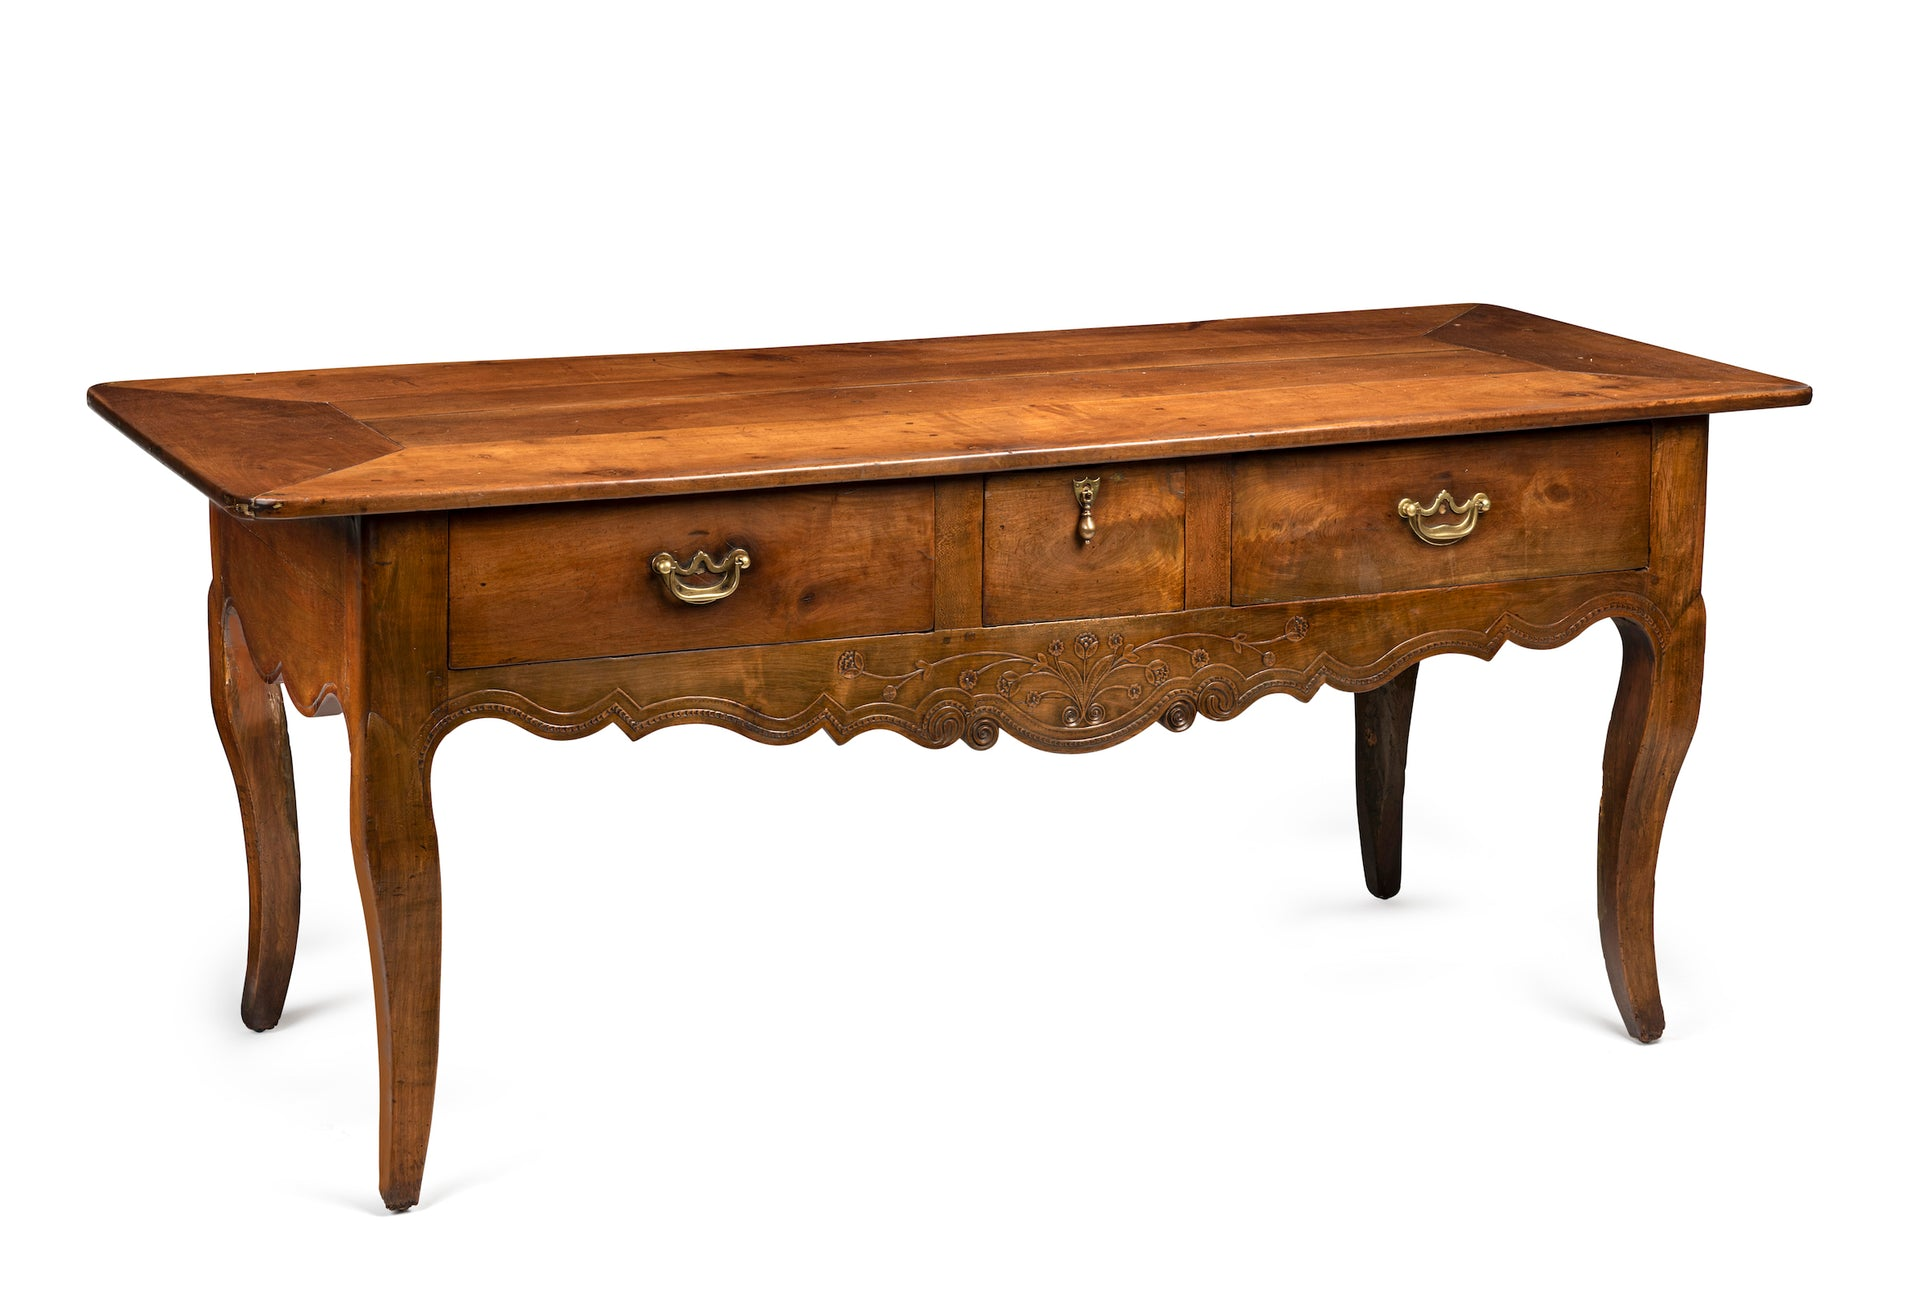 A beautifully carved Provincial cherrywood serving table, French 18th Century